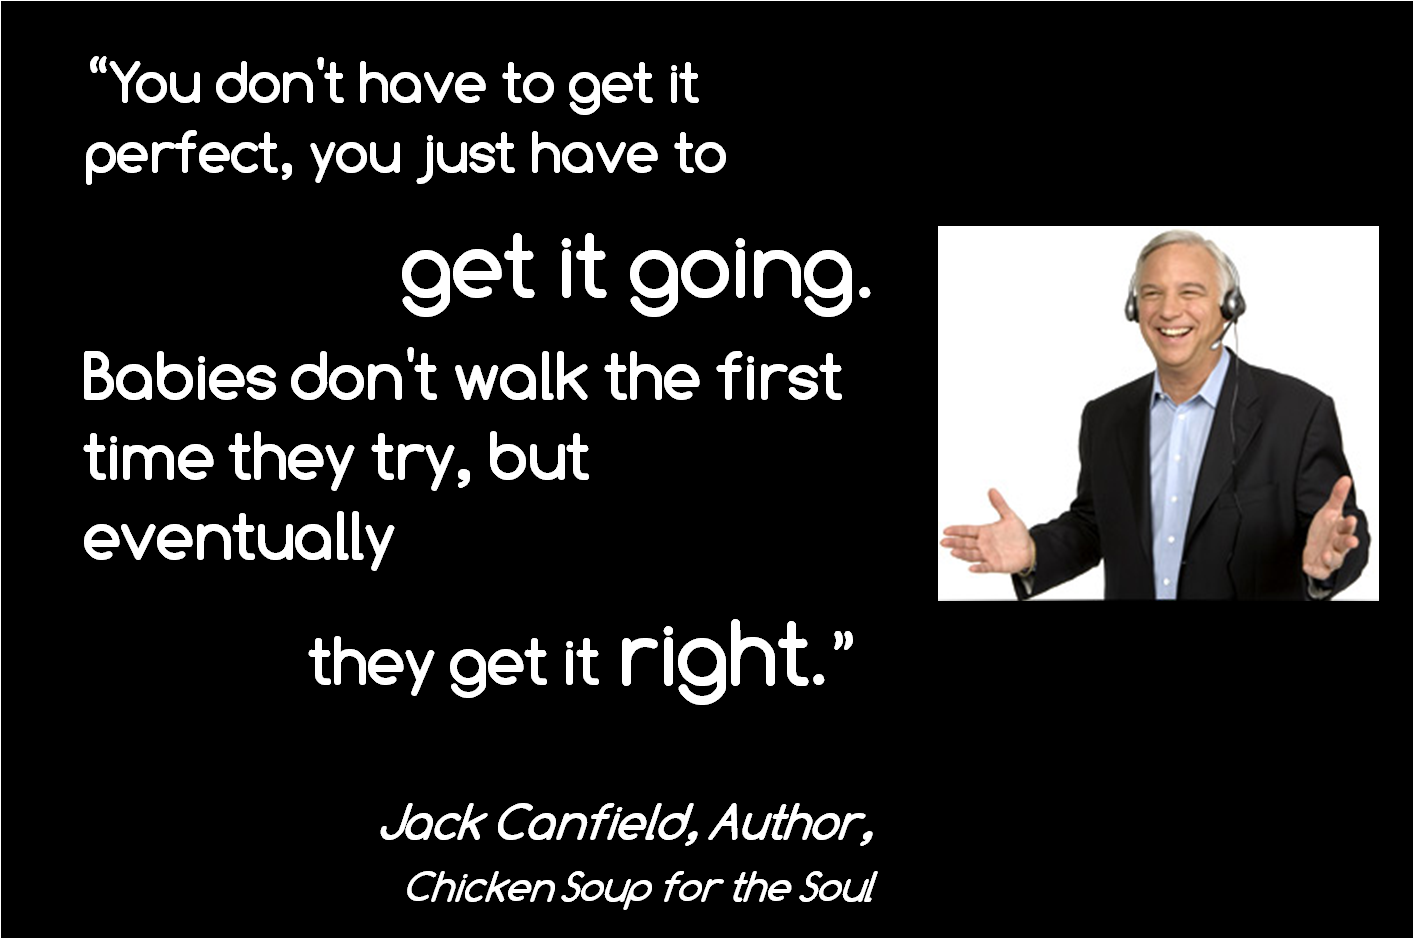 5. Jack Canfield